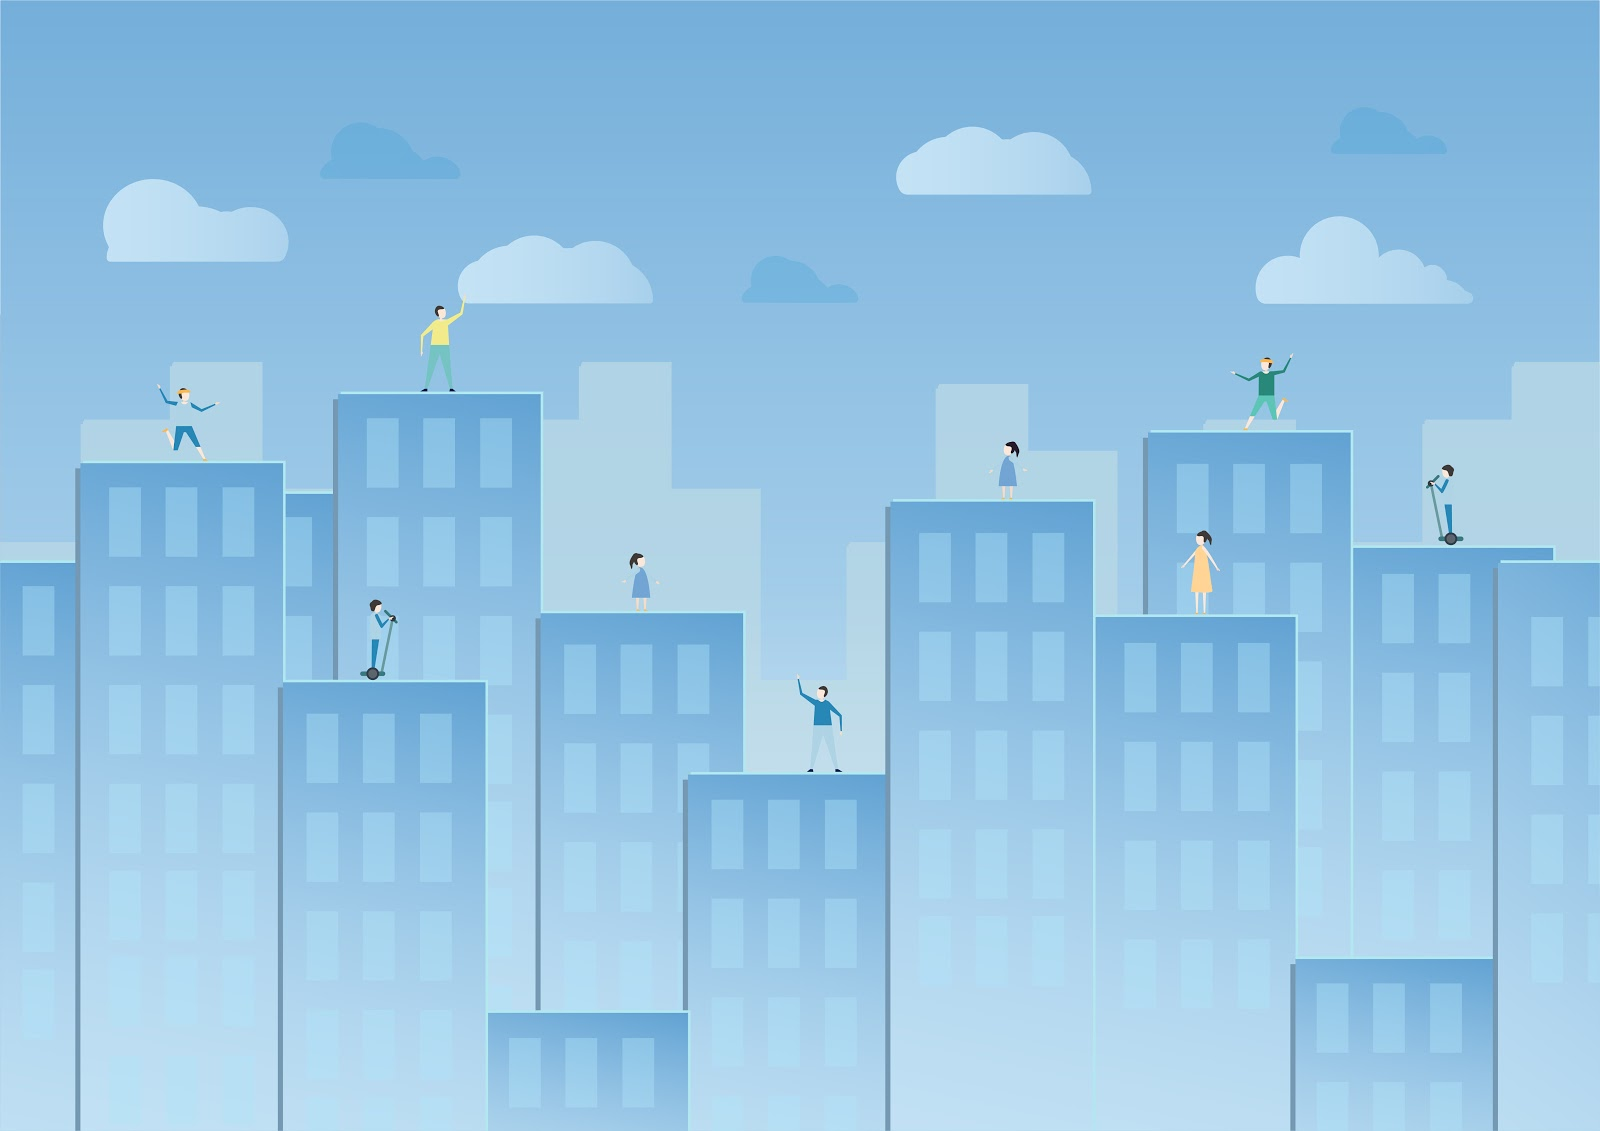 Image of skyscrapers in the city with people on the top of each building. Represents the infrastructure of a company and the need to keep it cyber resilient.